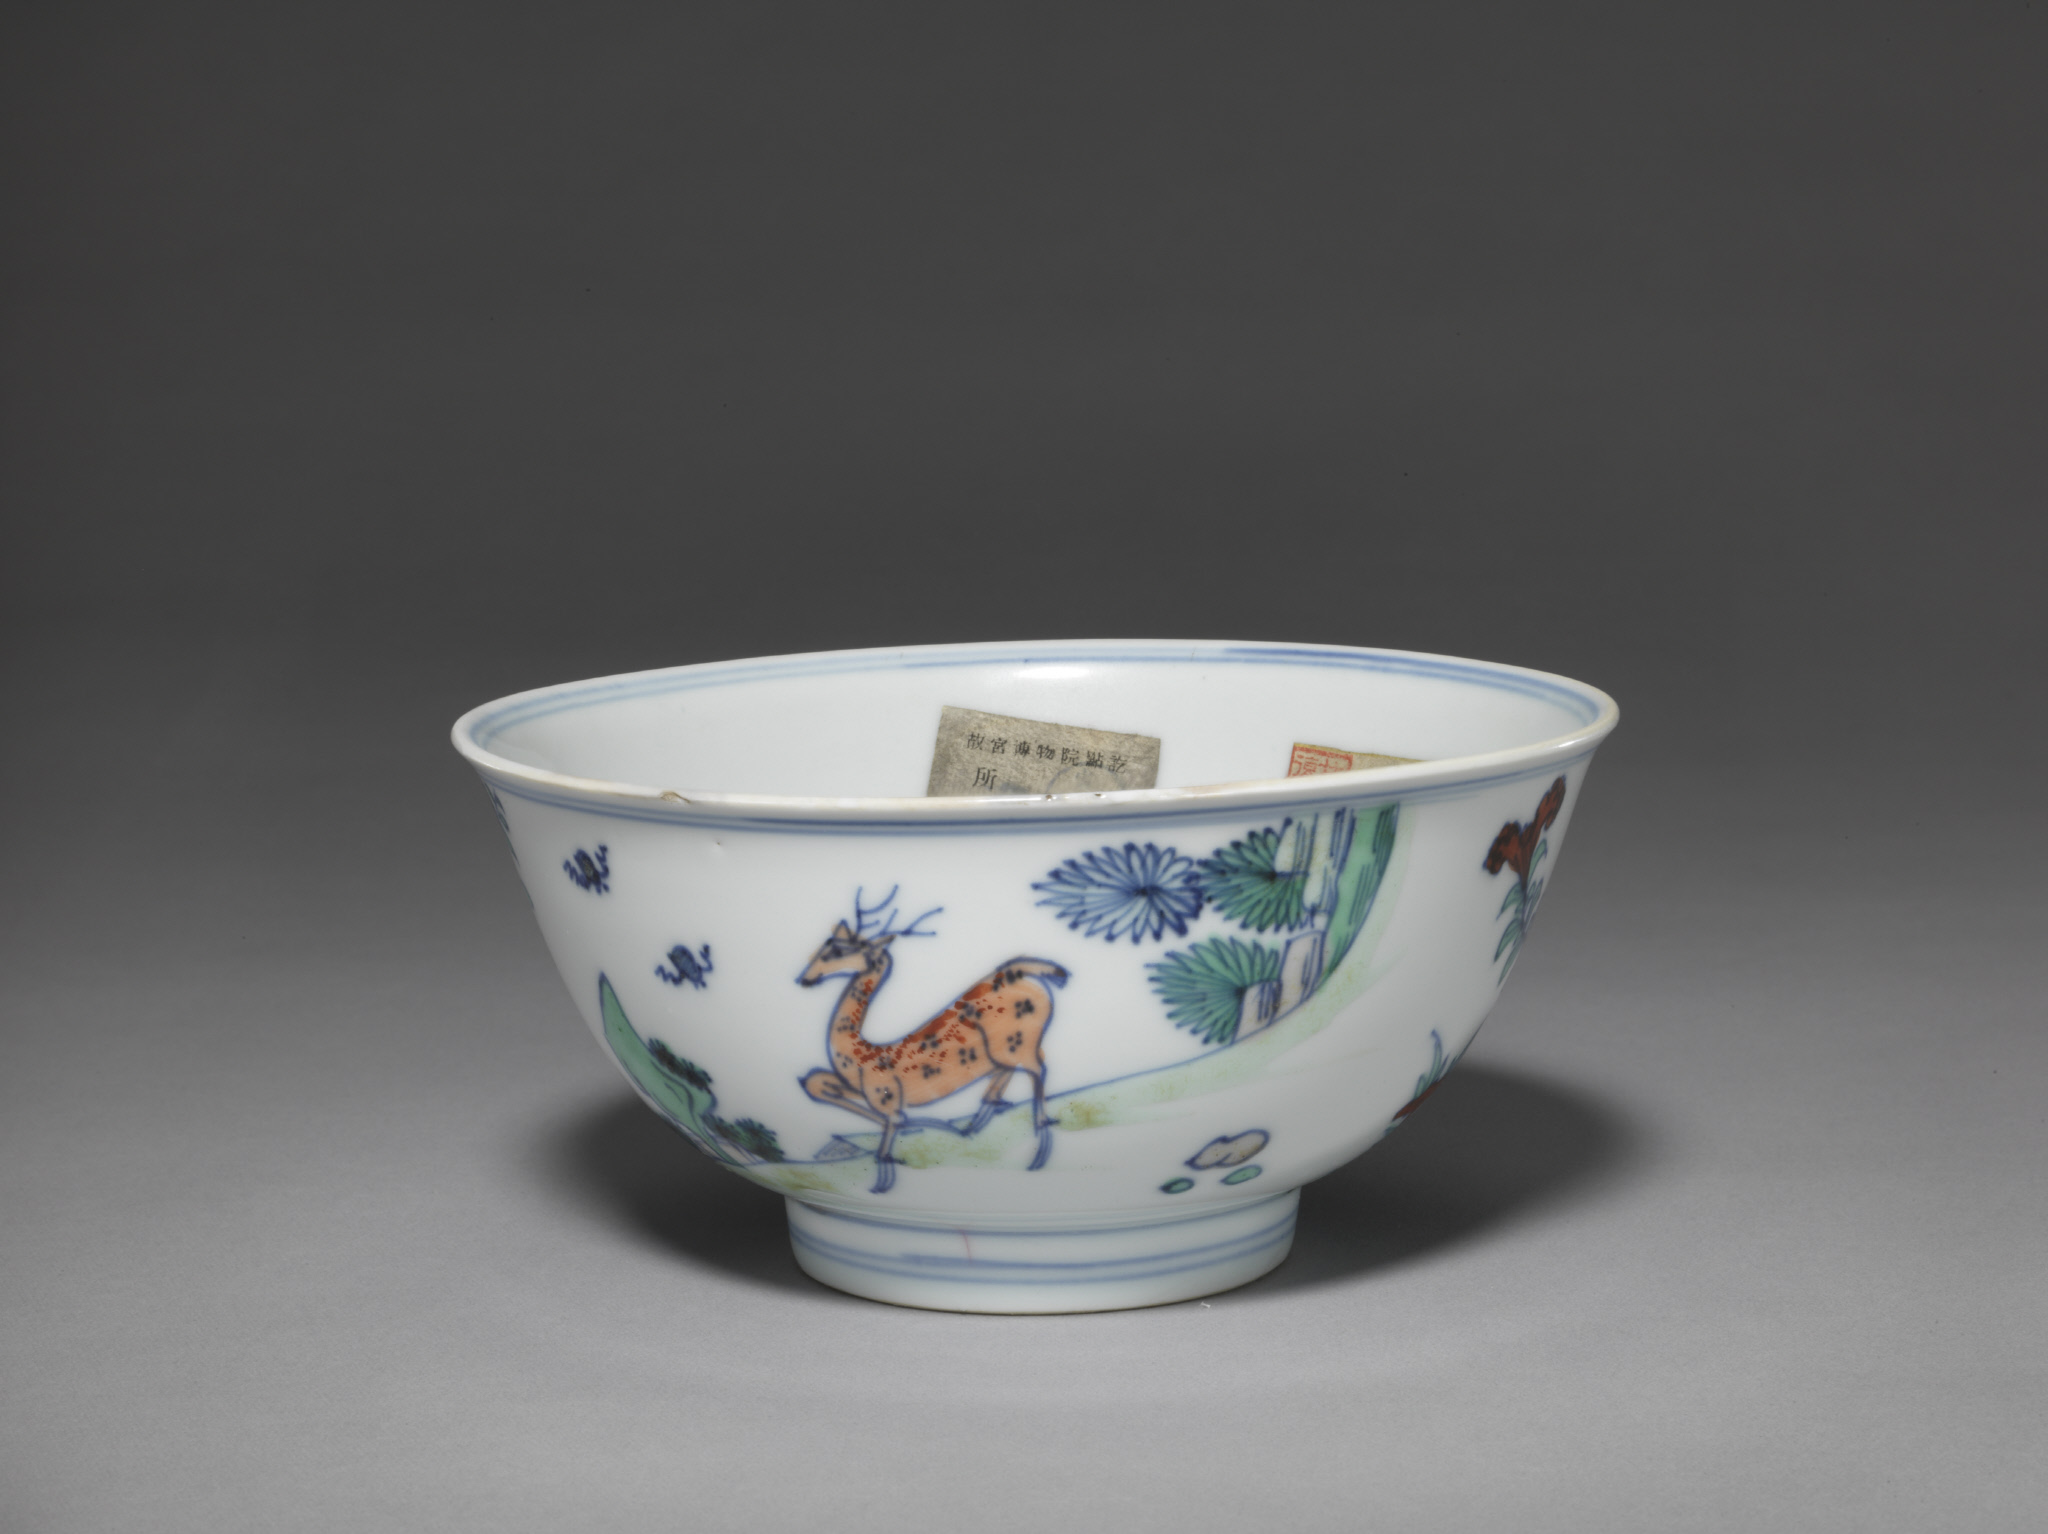 27c7adcd2cfd3fdd591397e880c97877 Ceramic  collections in  The Palace Museum - shengjiang  ceramic  factory   porcelain art hand basin wash sink